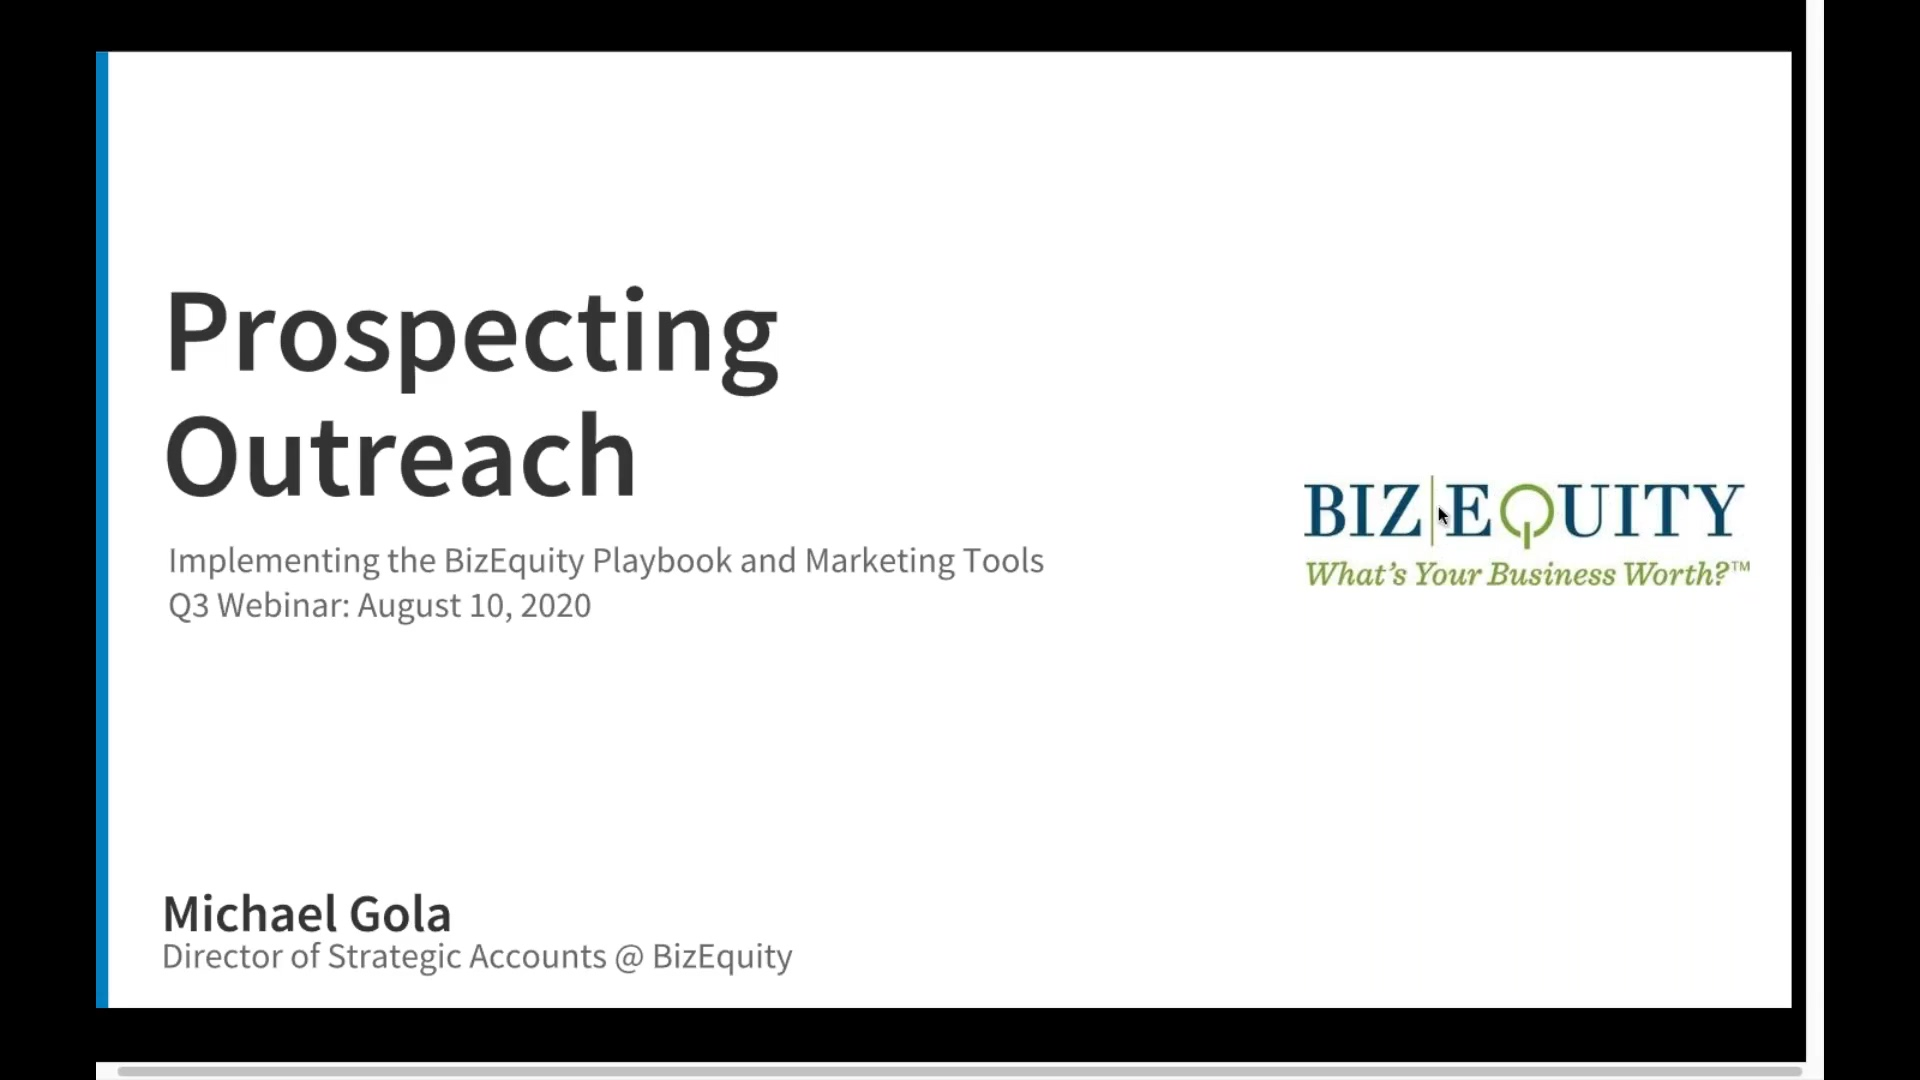 Prospecting Outreach - Implementing the BizEquity Playbook